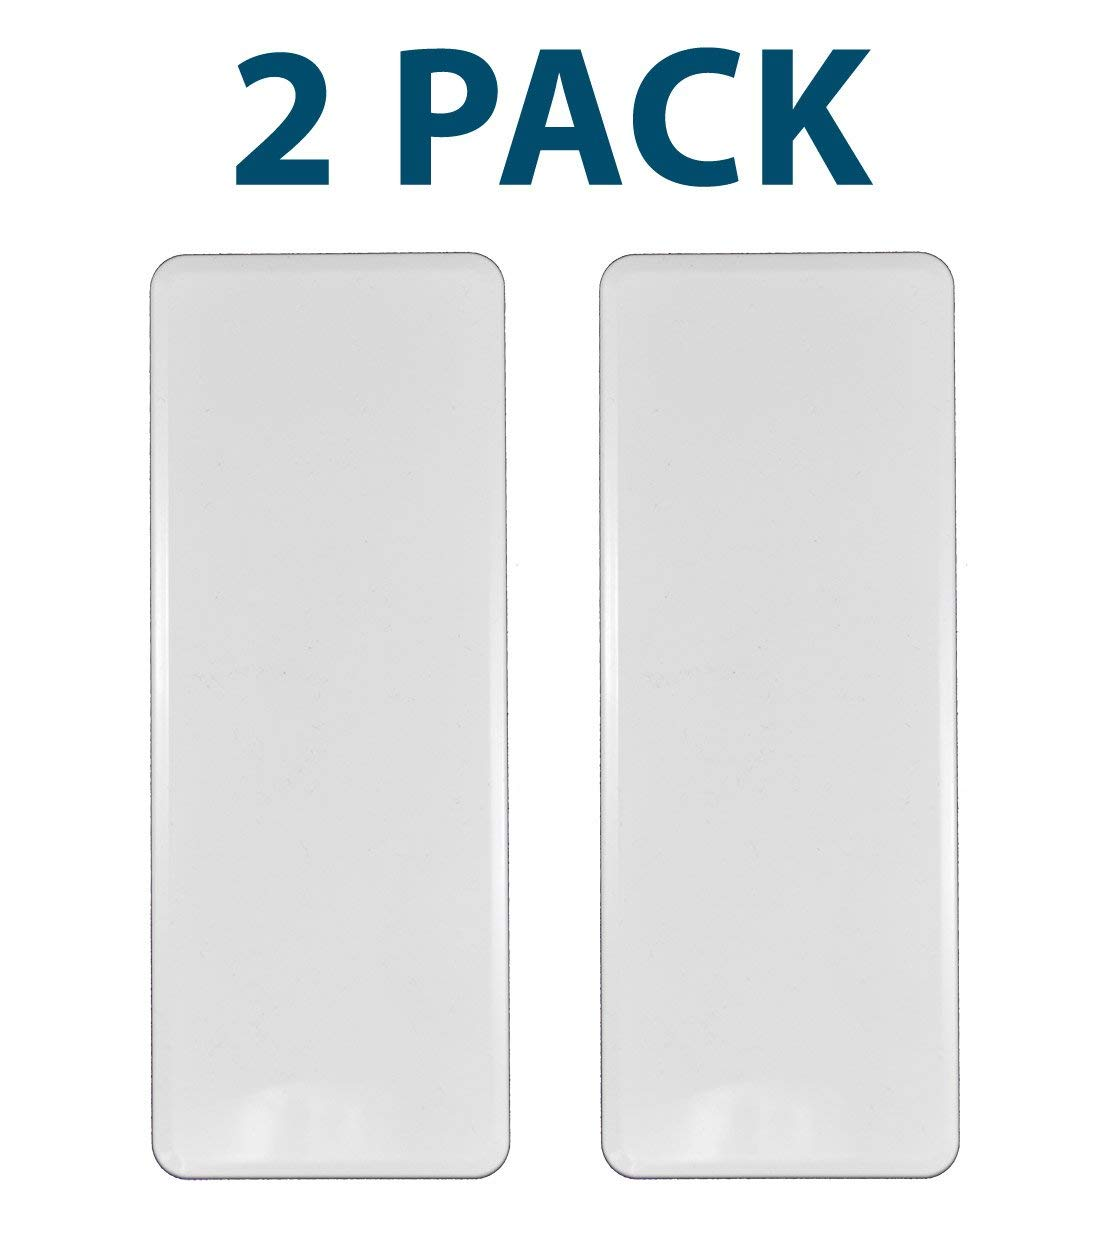 Cheap 10 Inch Cvr Find Deals On Line At Alibabacom Jeep Wrangler Kicker Speaker System Also 12 4 Ohm Wiring Get Quotations White Pvc Vinyl 15 X 55 Fence Hole Cover 2 Pack Awcp